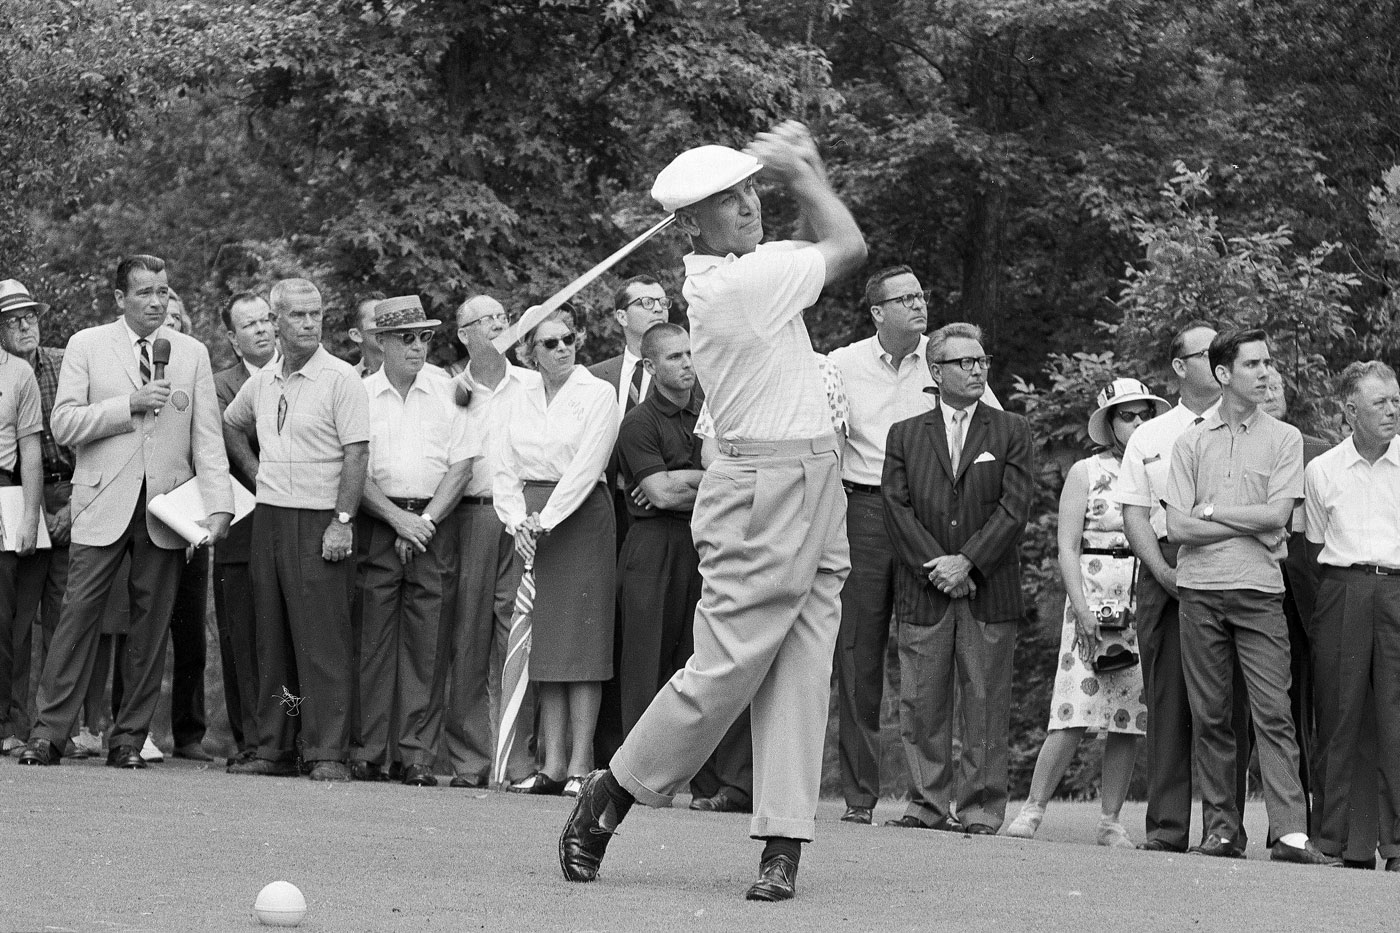 """Ben Hogan on the tee during the 1965 """"Shell's Wonderful World of Golf Match"""" against Sam Snead. Hogan hit every fairway and every green."""